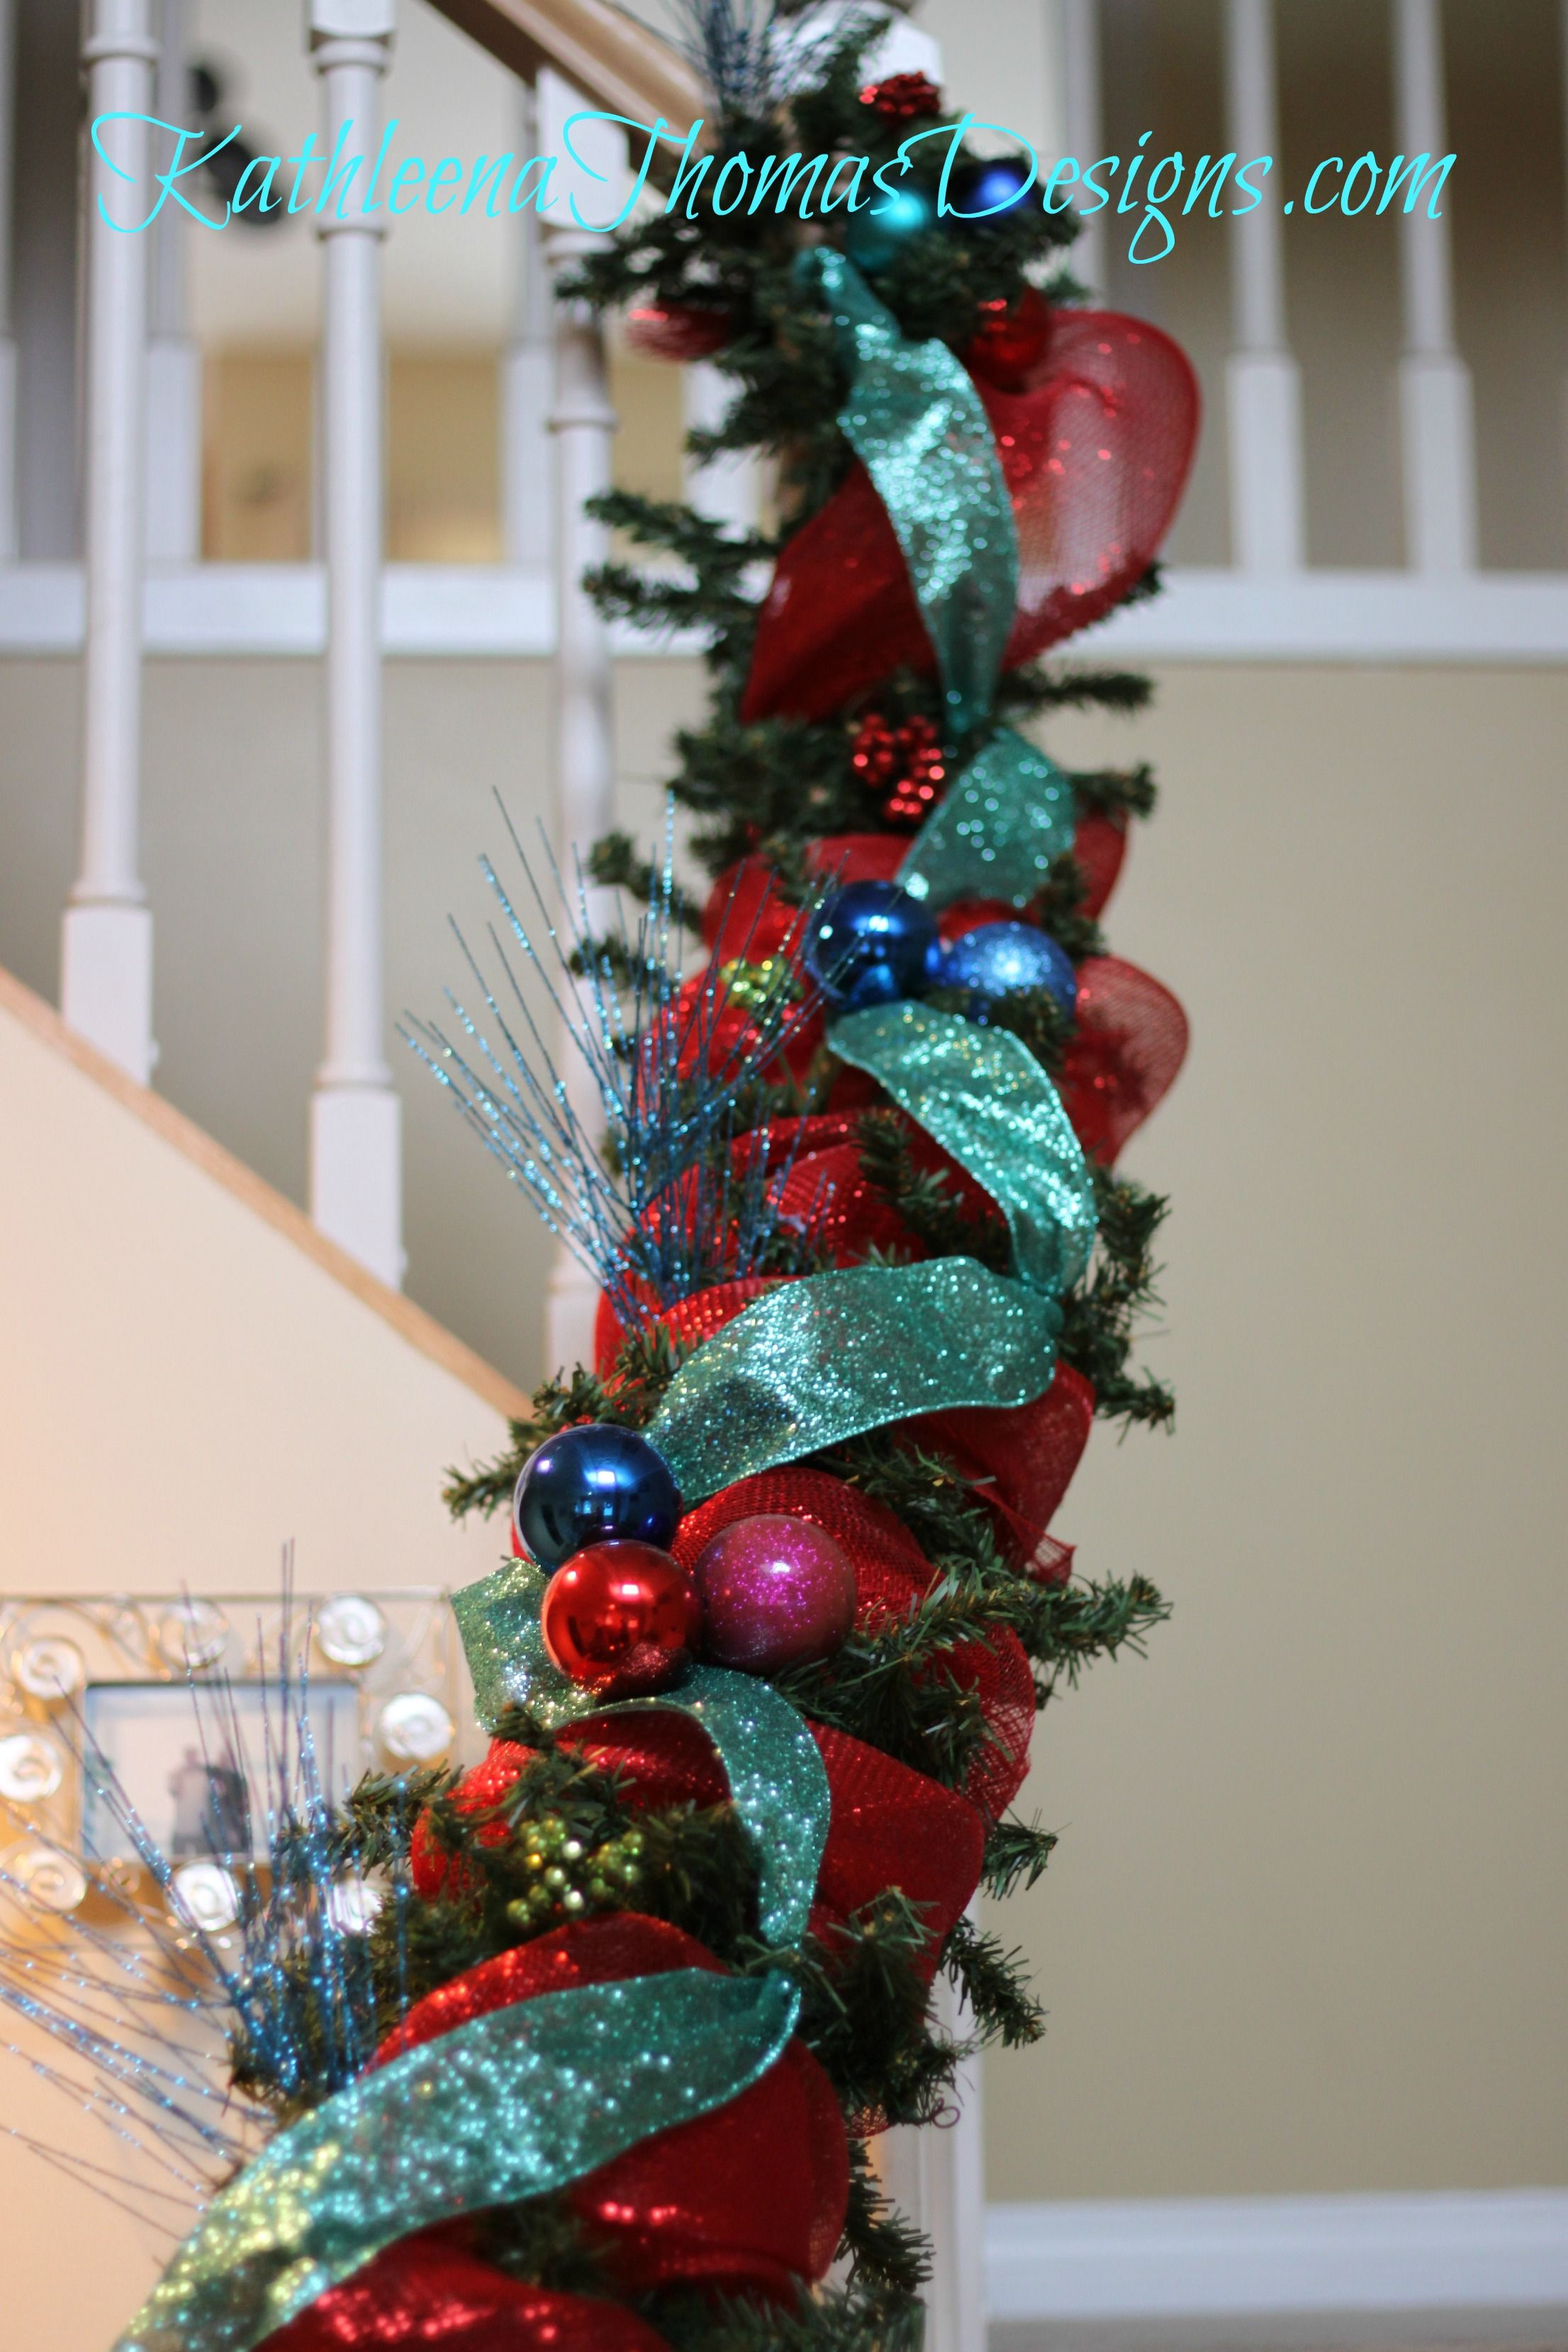 Christmas Stair Decorations In Red, Blue, Turquoise With Sinamay And